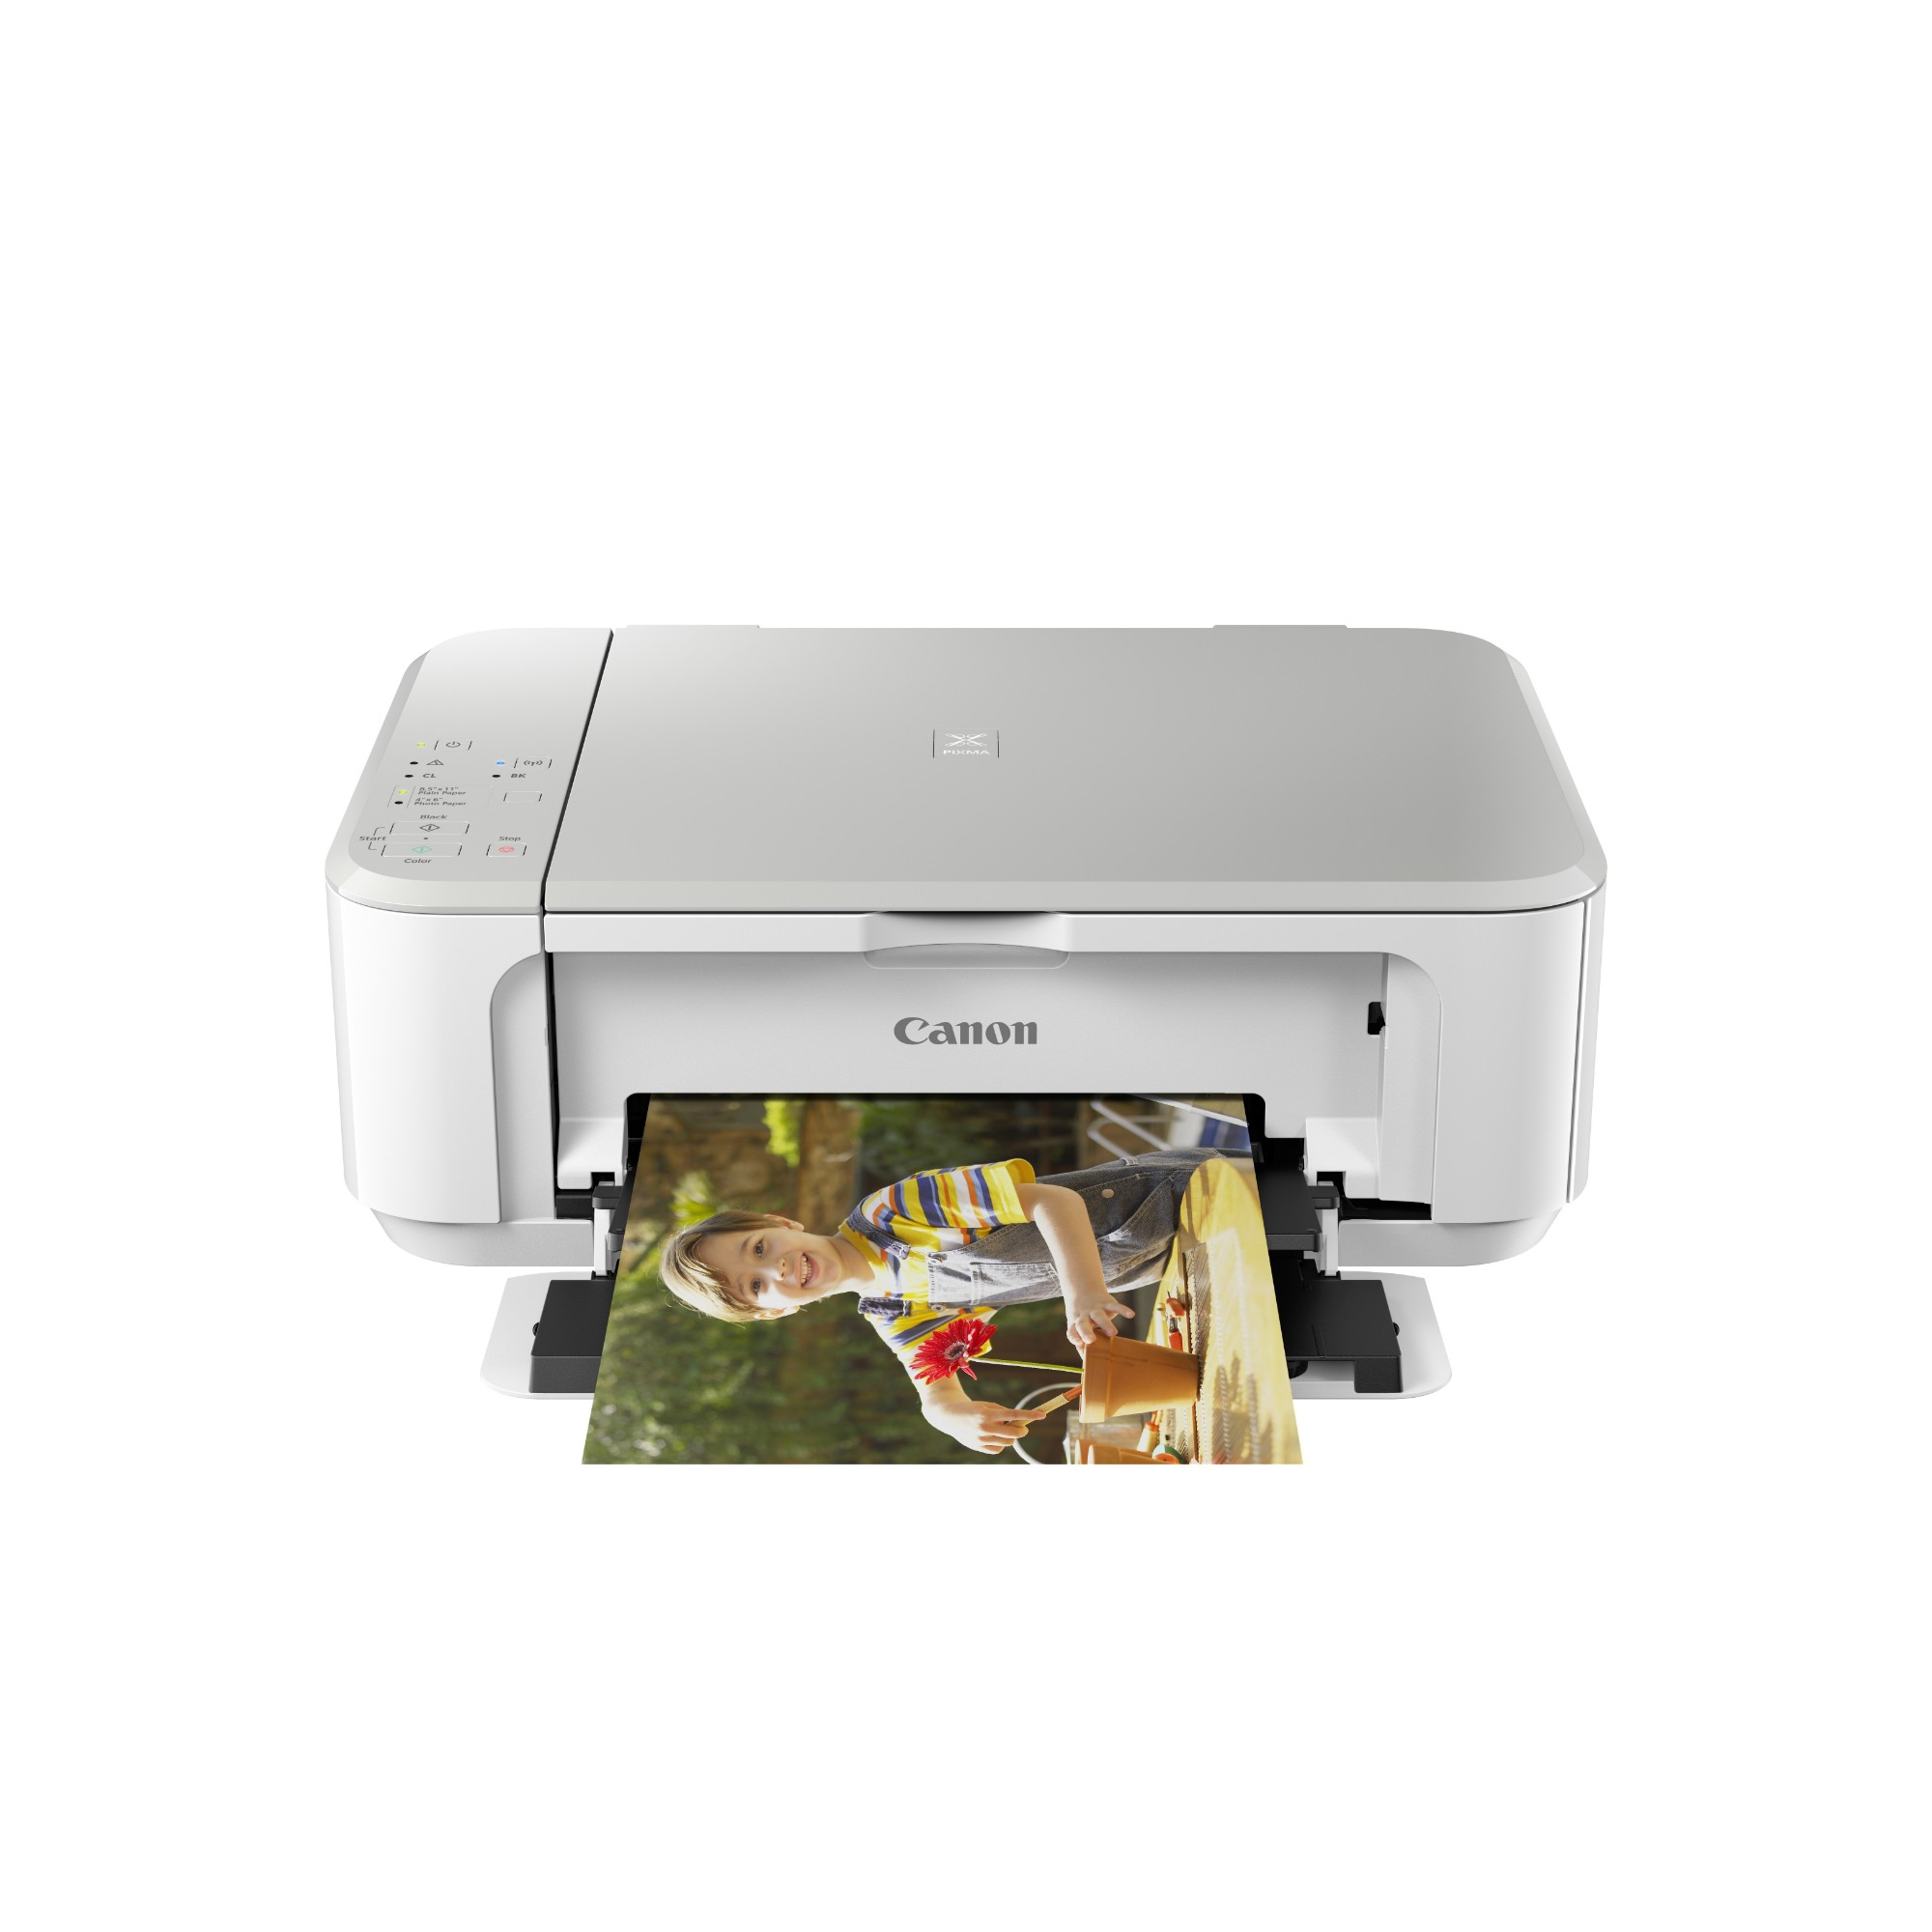 Canon Mg3650 Canon Pixma Mg3650 4800 X 1200dpi Inkjet A4 Wi Fi 100 In